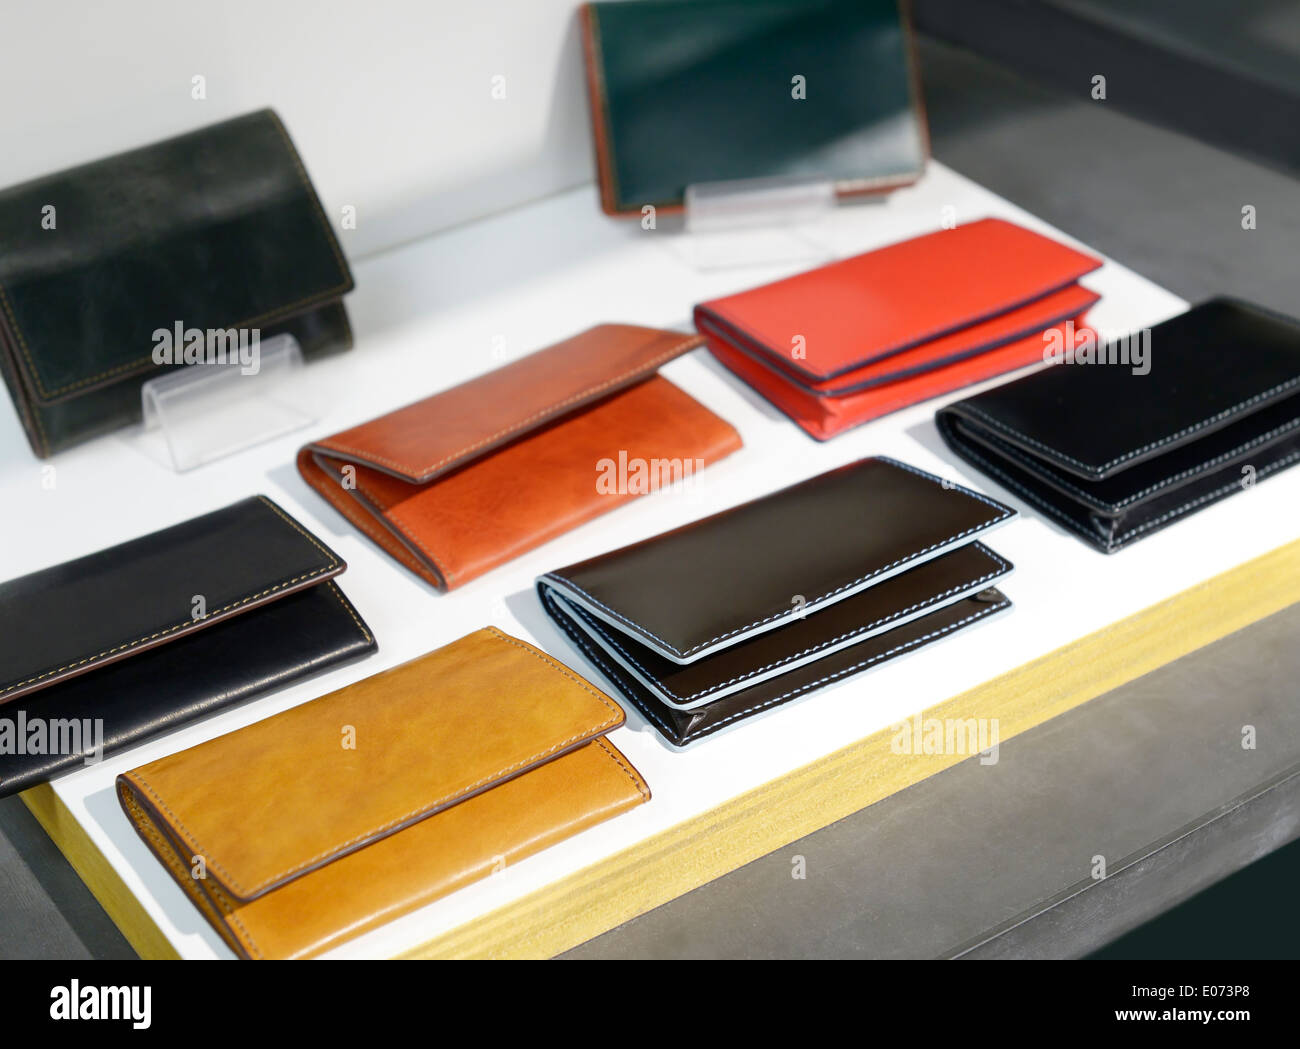 Mens folding leather wallets on display in a store - Stock Image